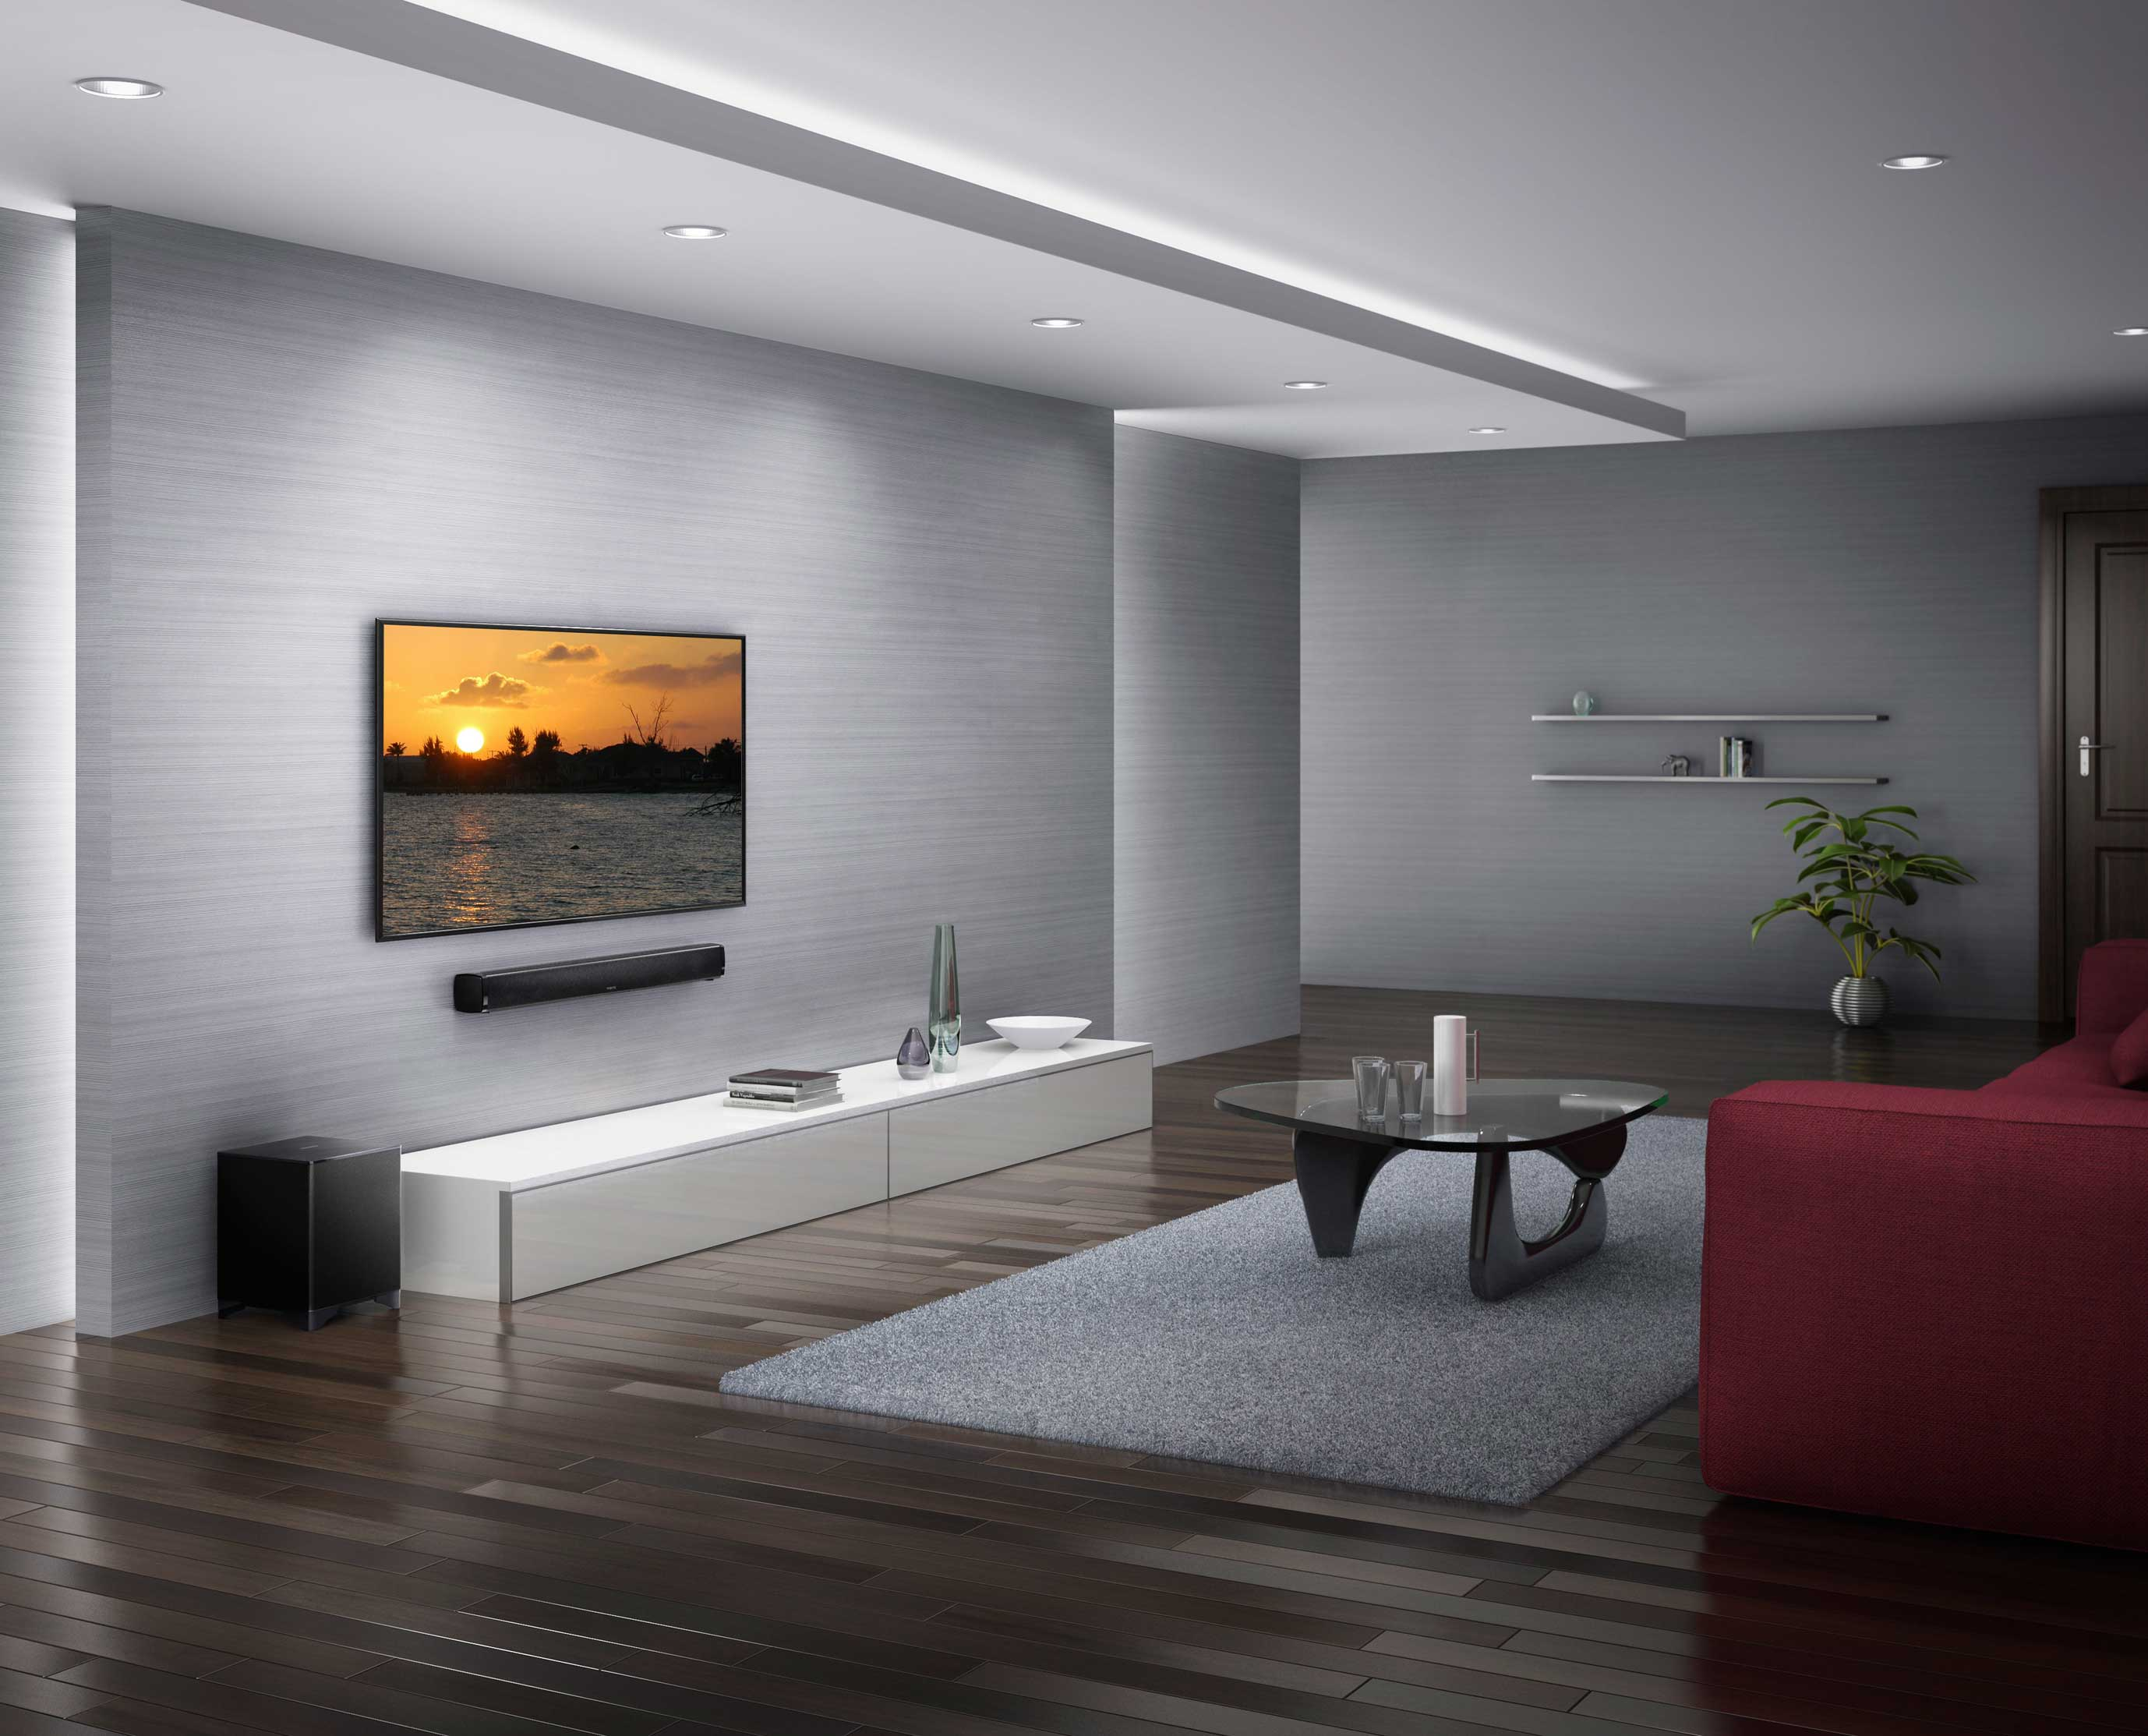 onkyo aims to improve poor tv sound with soundbar solutions tech digest. Black Bedroom Furniture Sets. Home Design Ideas